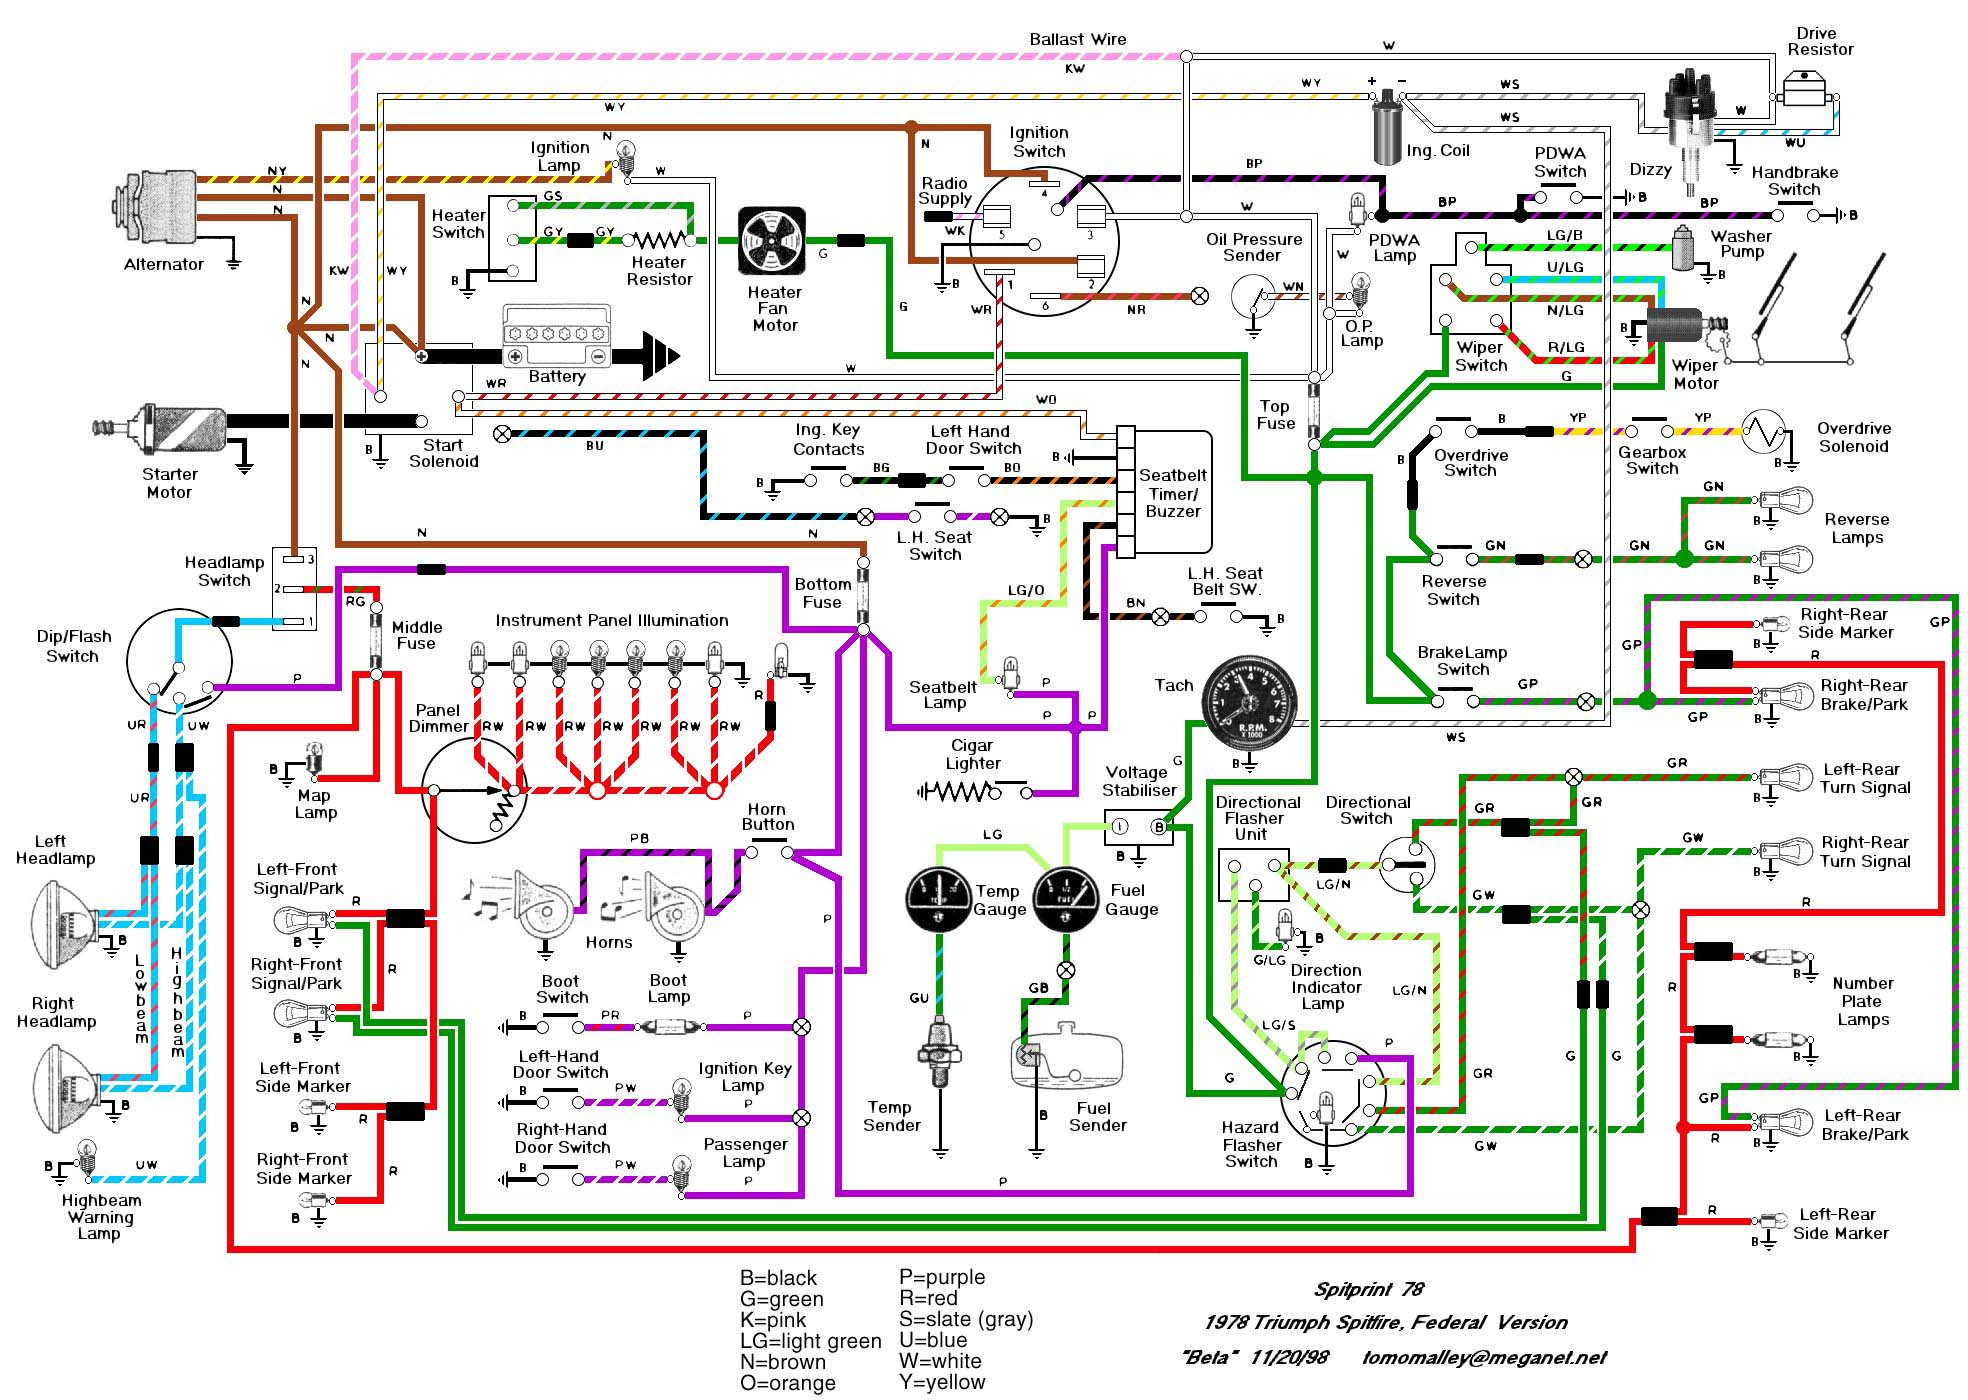 WRG-2199] Mgb Lucas Alternator Wiring Diagram